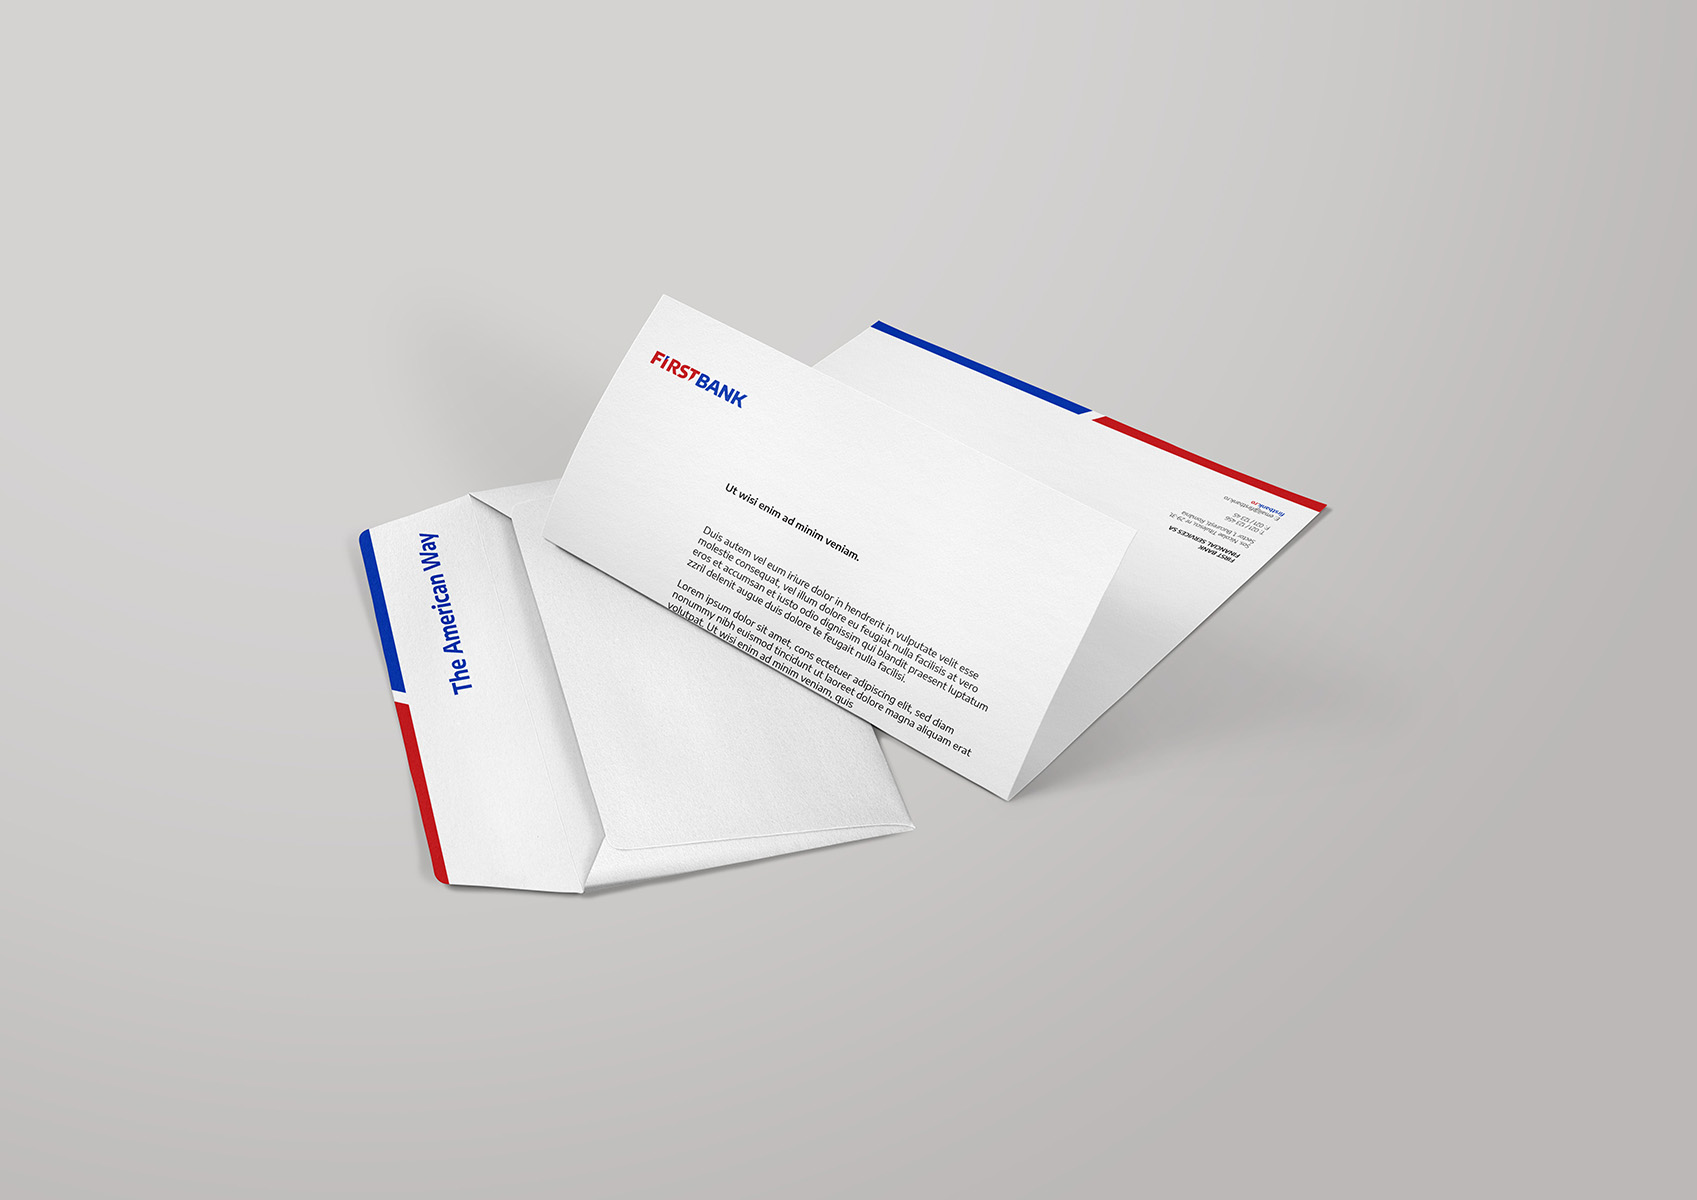 first bank portofoliu inoveo envelope